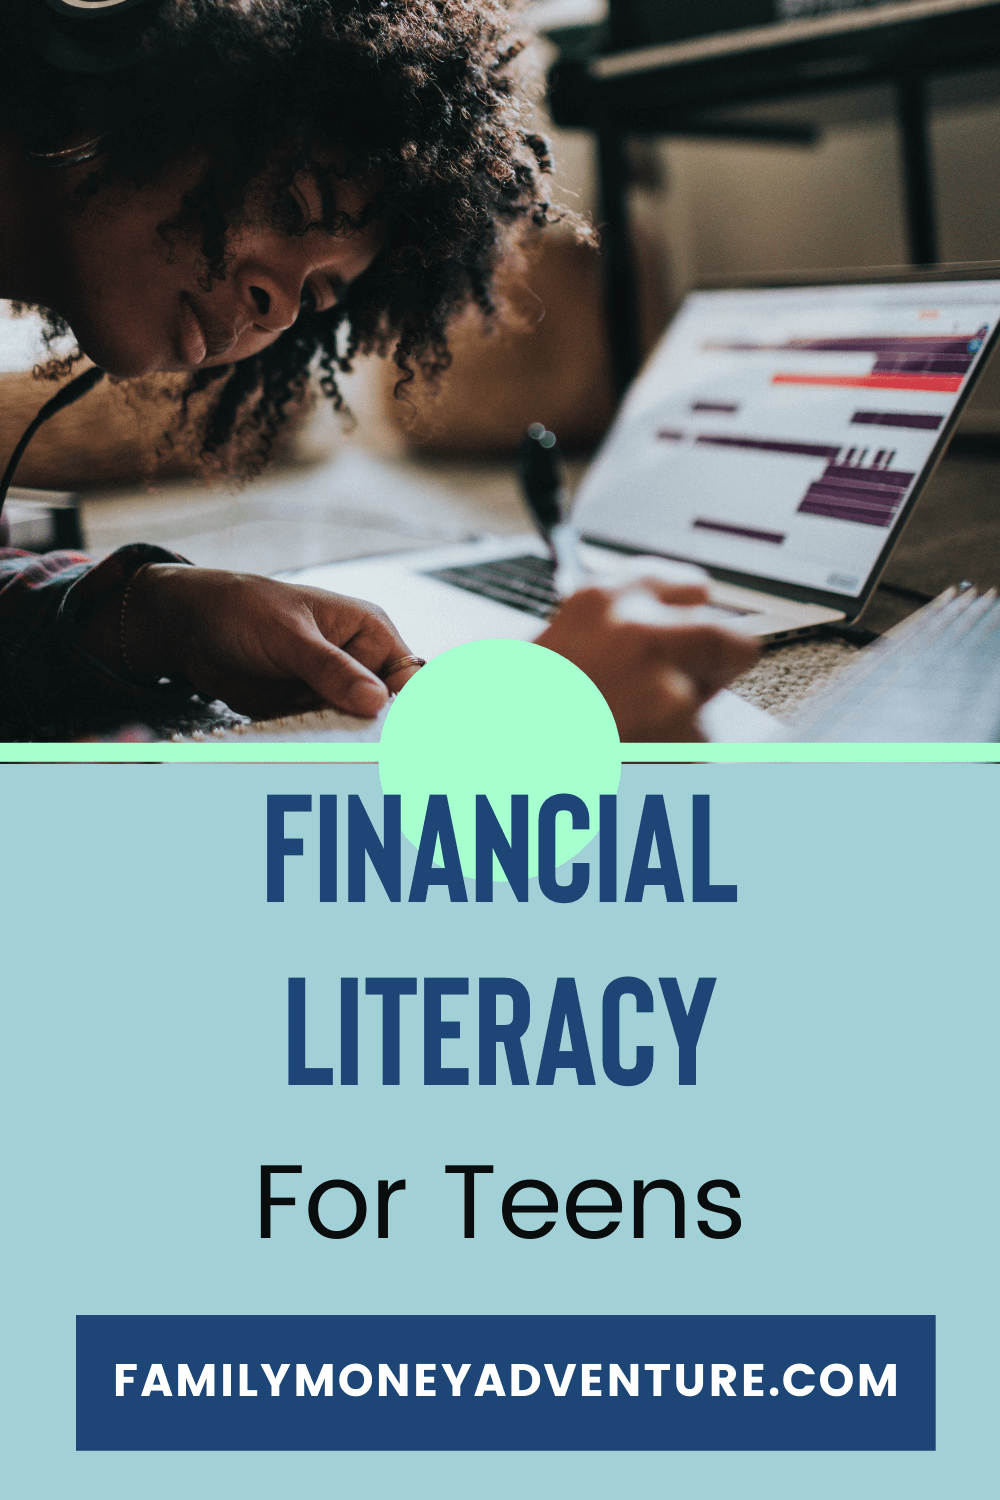 Financial Literacy For Teens